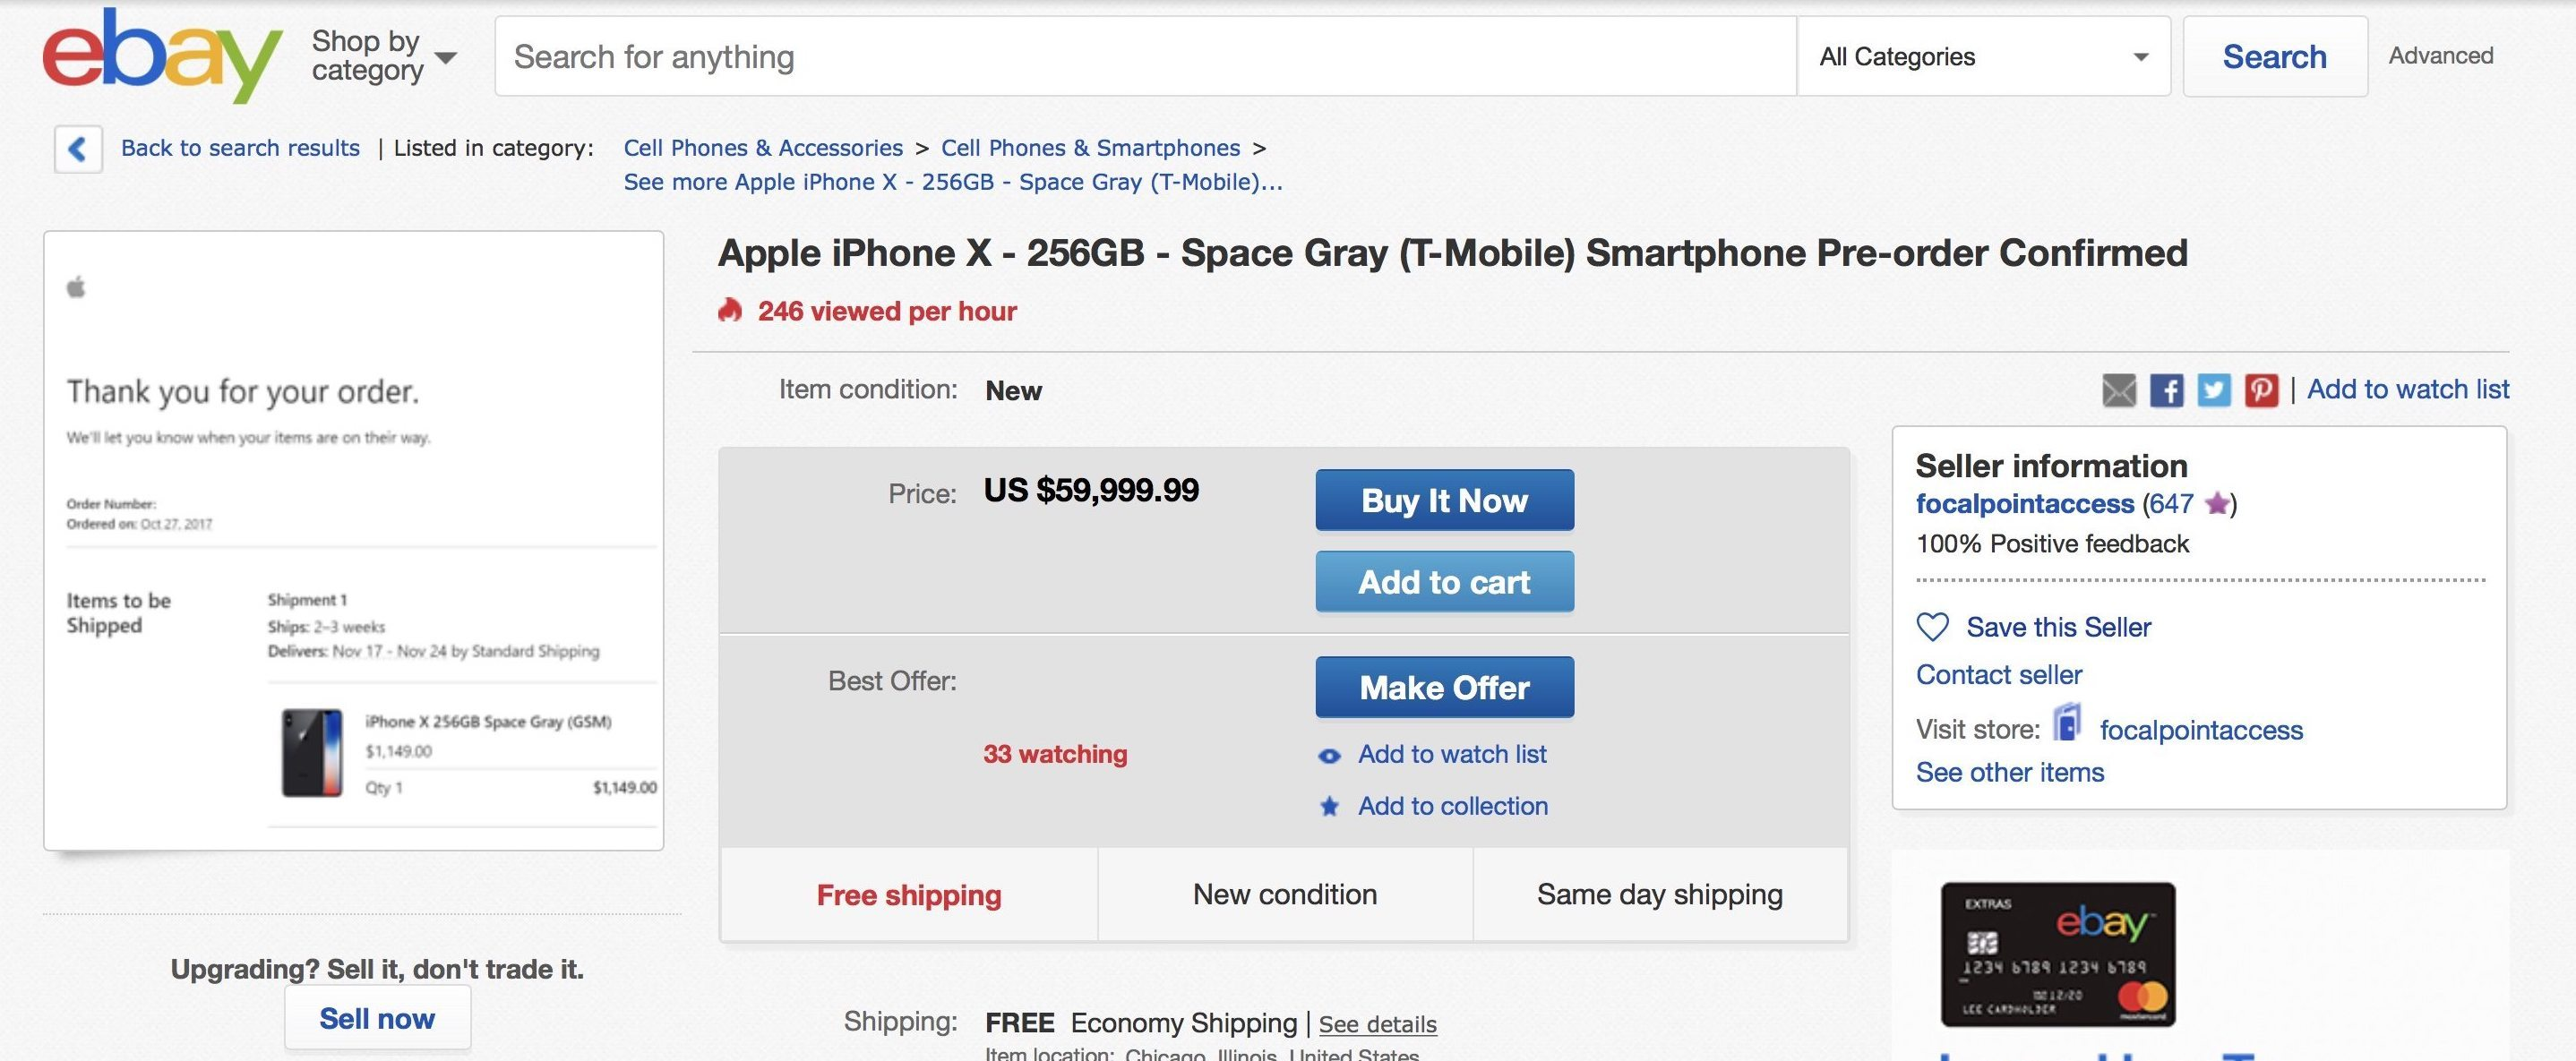 iPhone X Devices Demand up to $60,000 on eBay This Morning